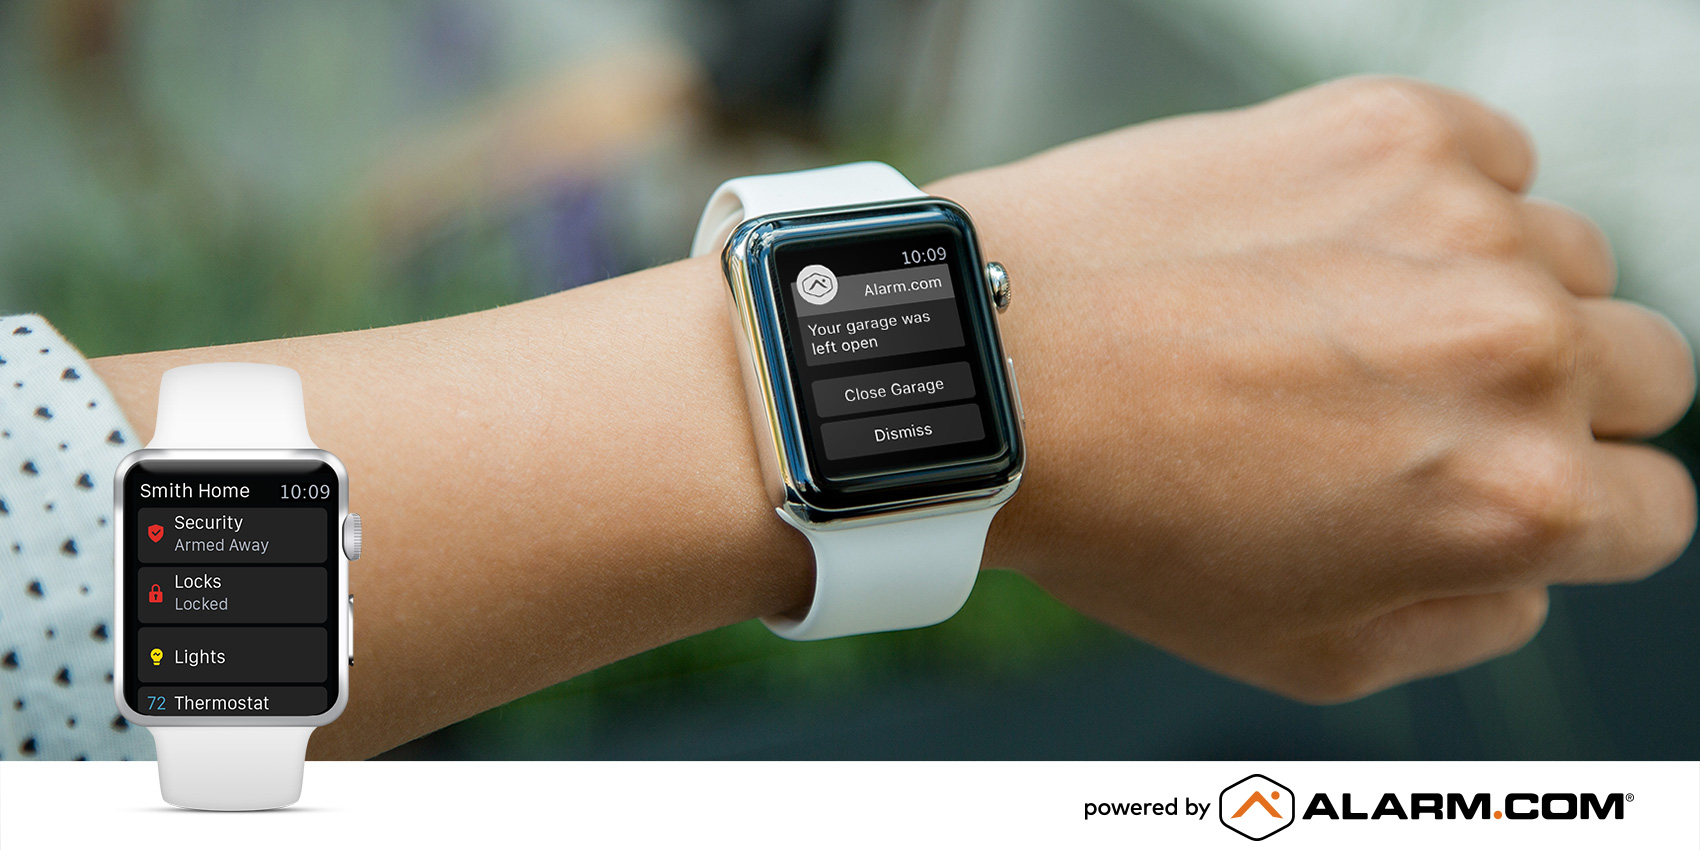 compatible-apple-watch-harris-alarms-image